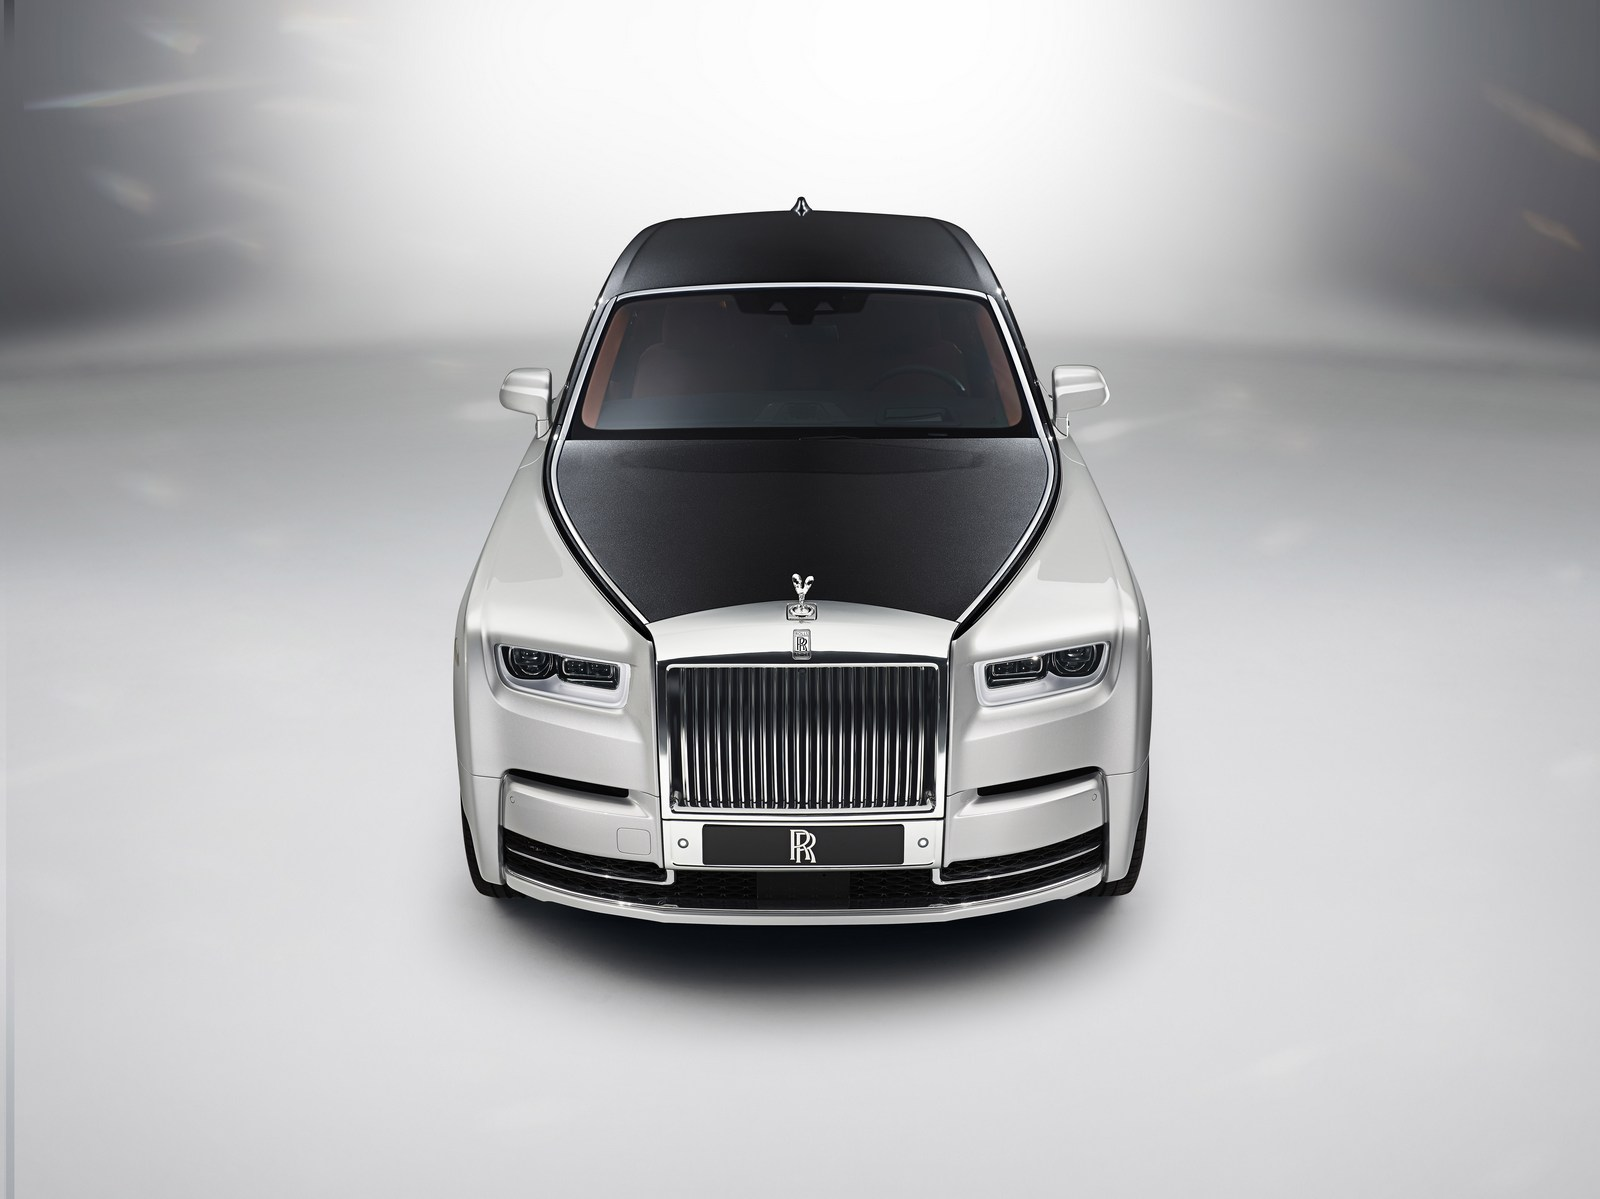 2018_Rolls-Royce_Phantom_18